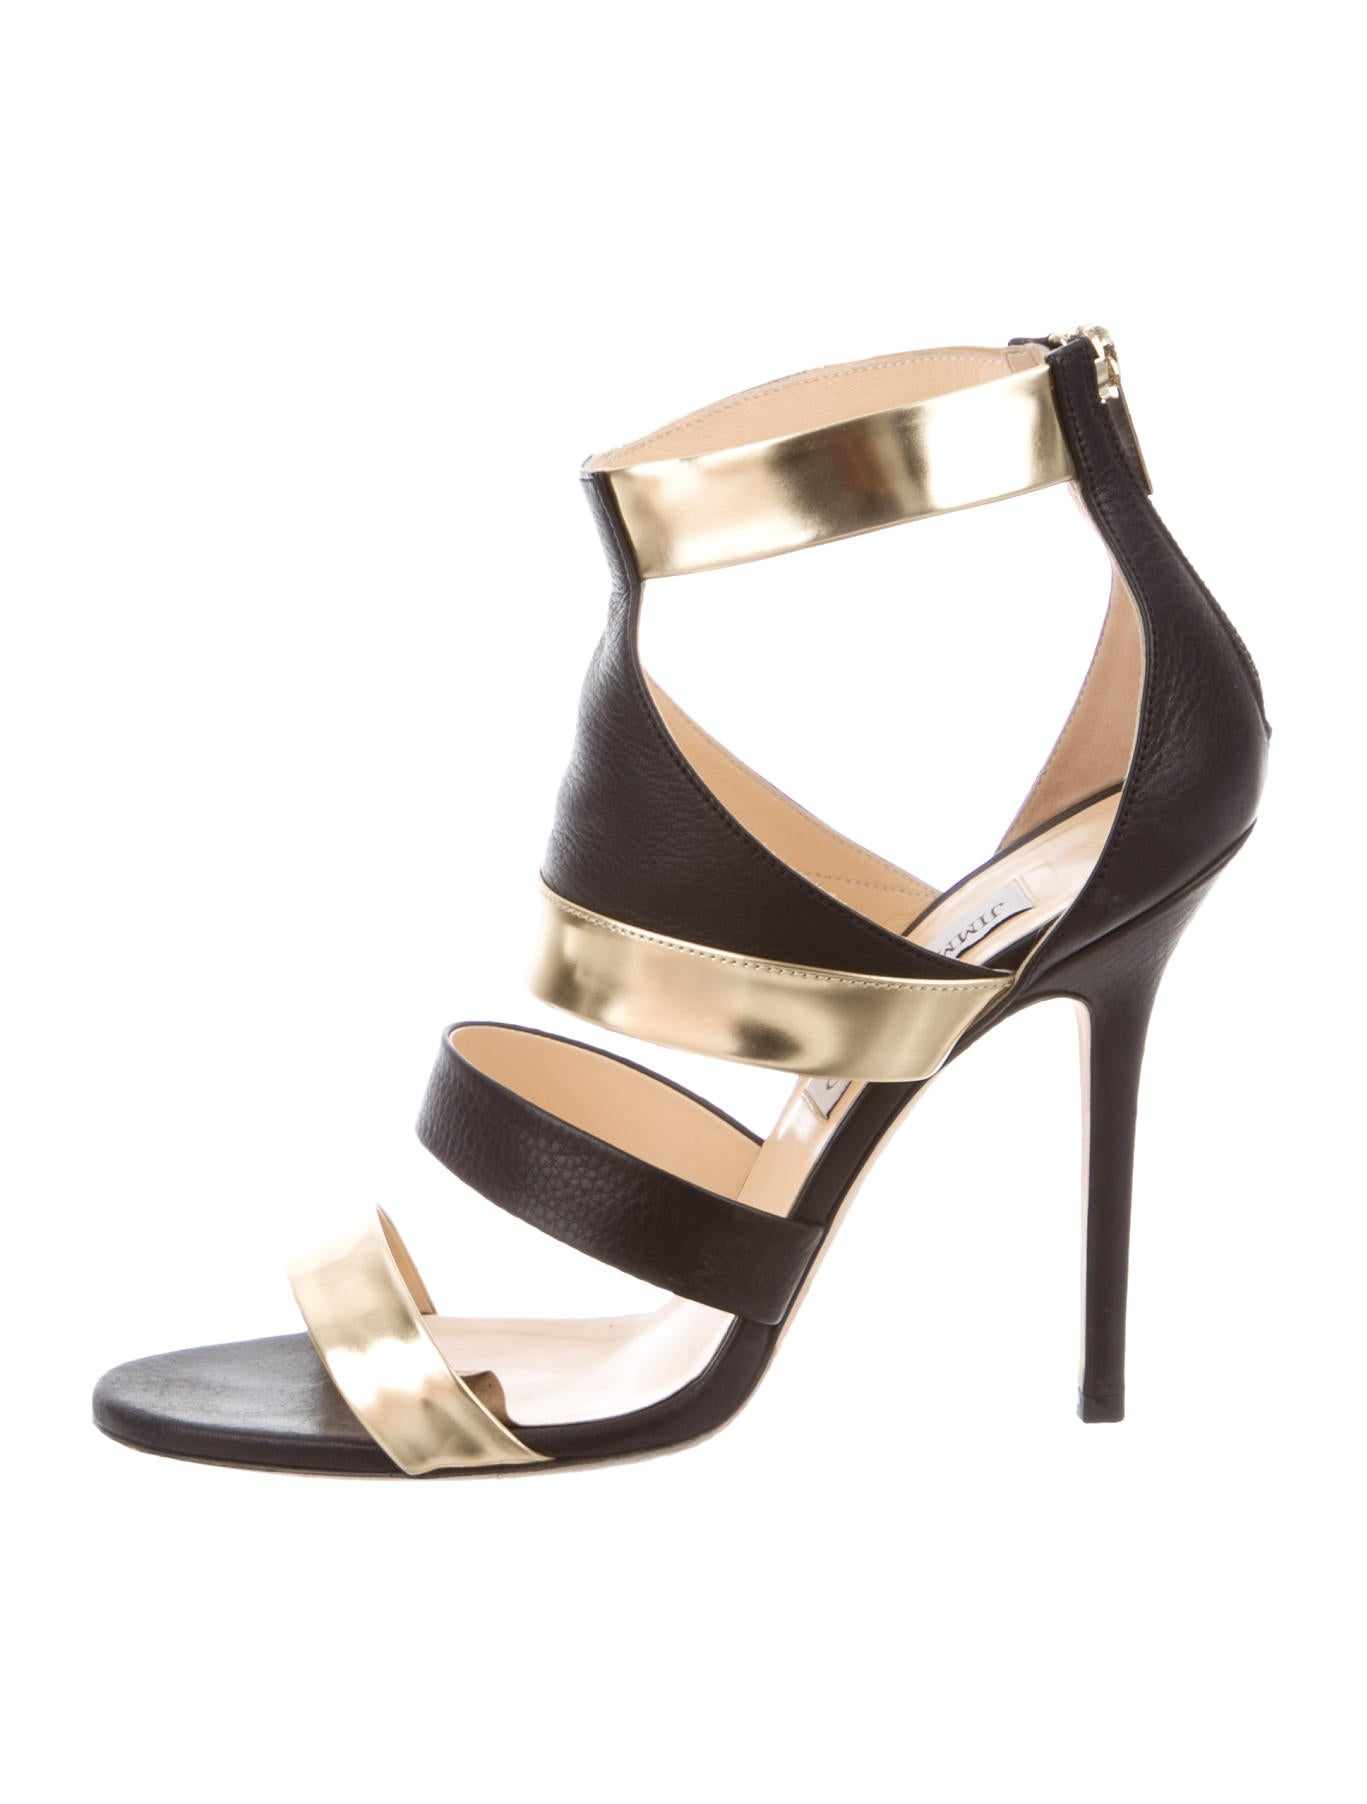 6bdb4ae72bd4 Jimmy Choo Besso Caged Sandals - Shoes - JIM43815